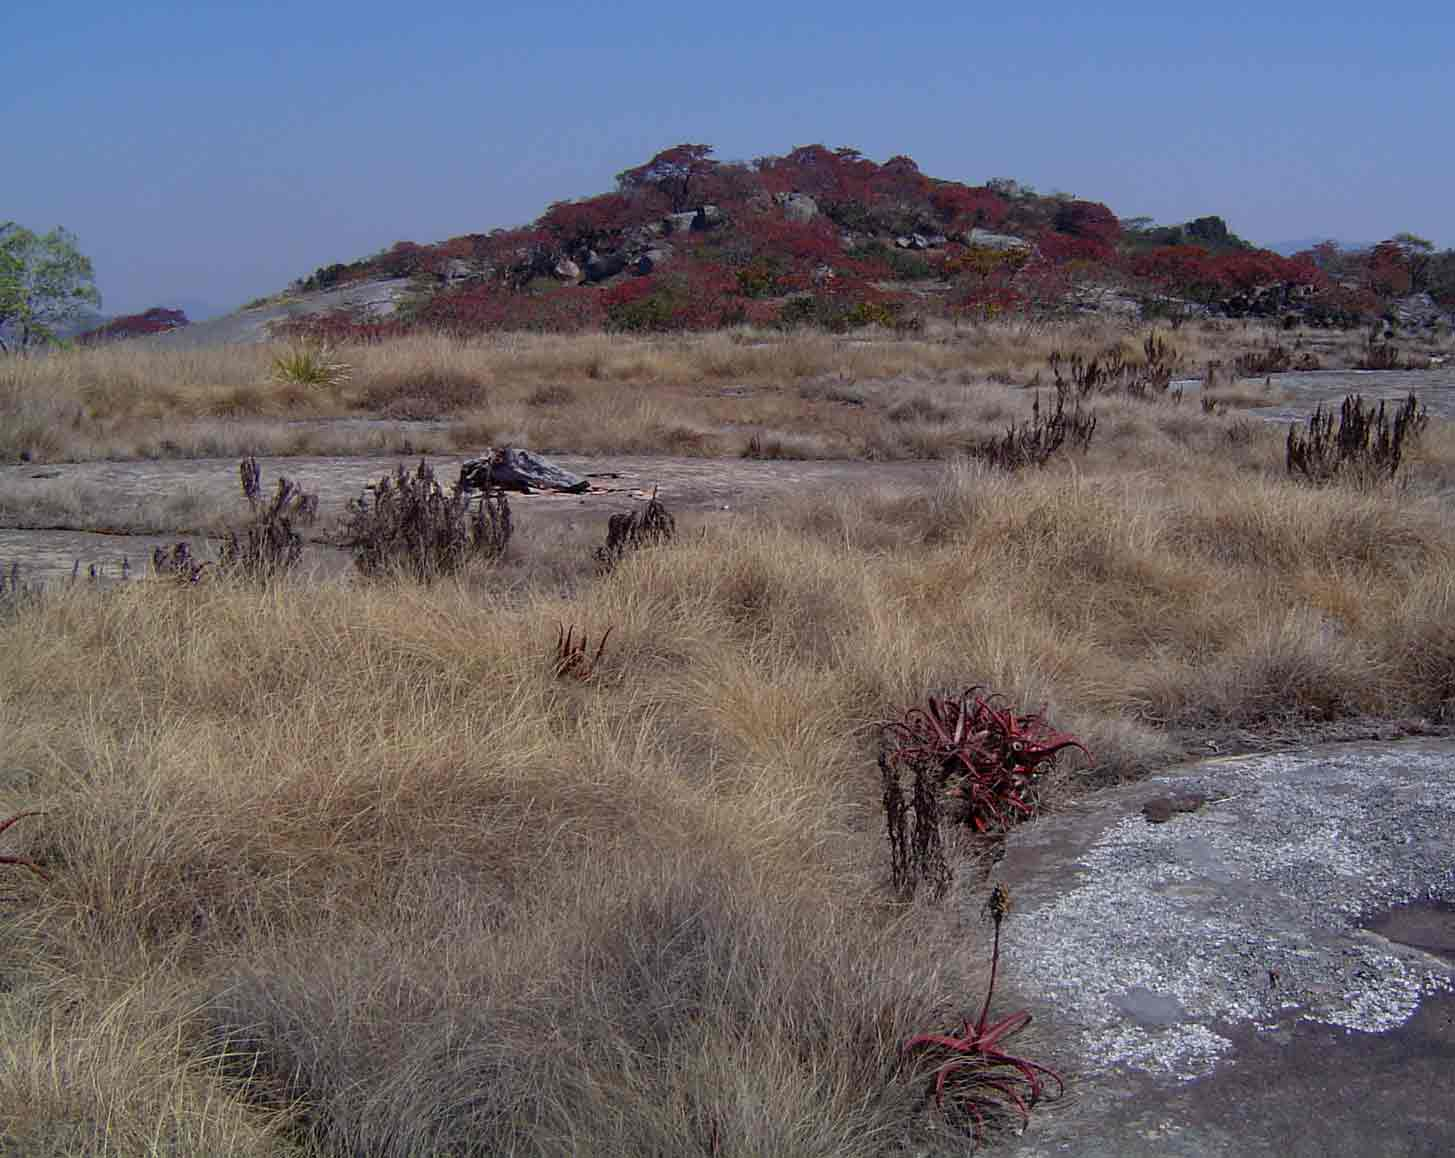 """<a href=""""species.php?species_id=113790"""">Aloe cameronii</a> and <a href=""""species.php?species_id=125310"""">Myrothamnus flabellifolius</a> in vegetation islands"""